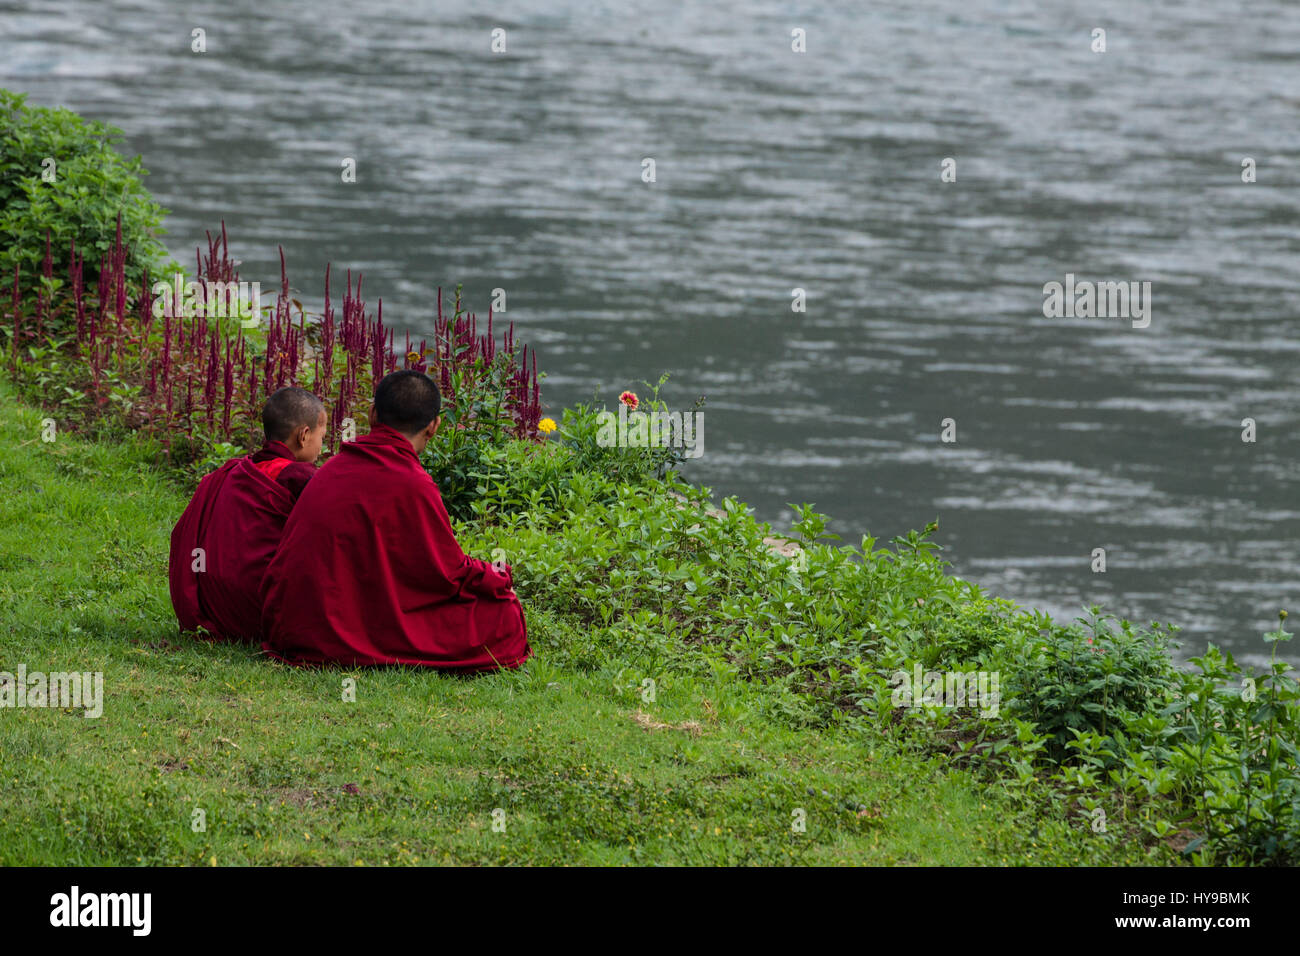 Two young novice Buddhist monks sit in the grass on the bank of the Mo Chhu River at the Punakha Dzong in Punakha, - Stock Image